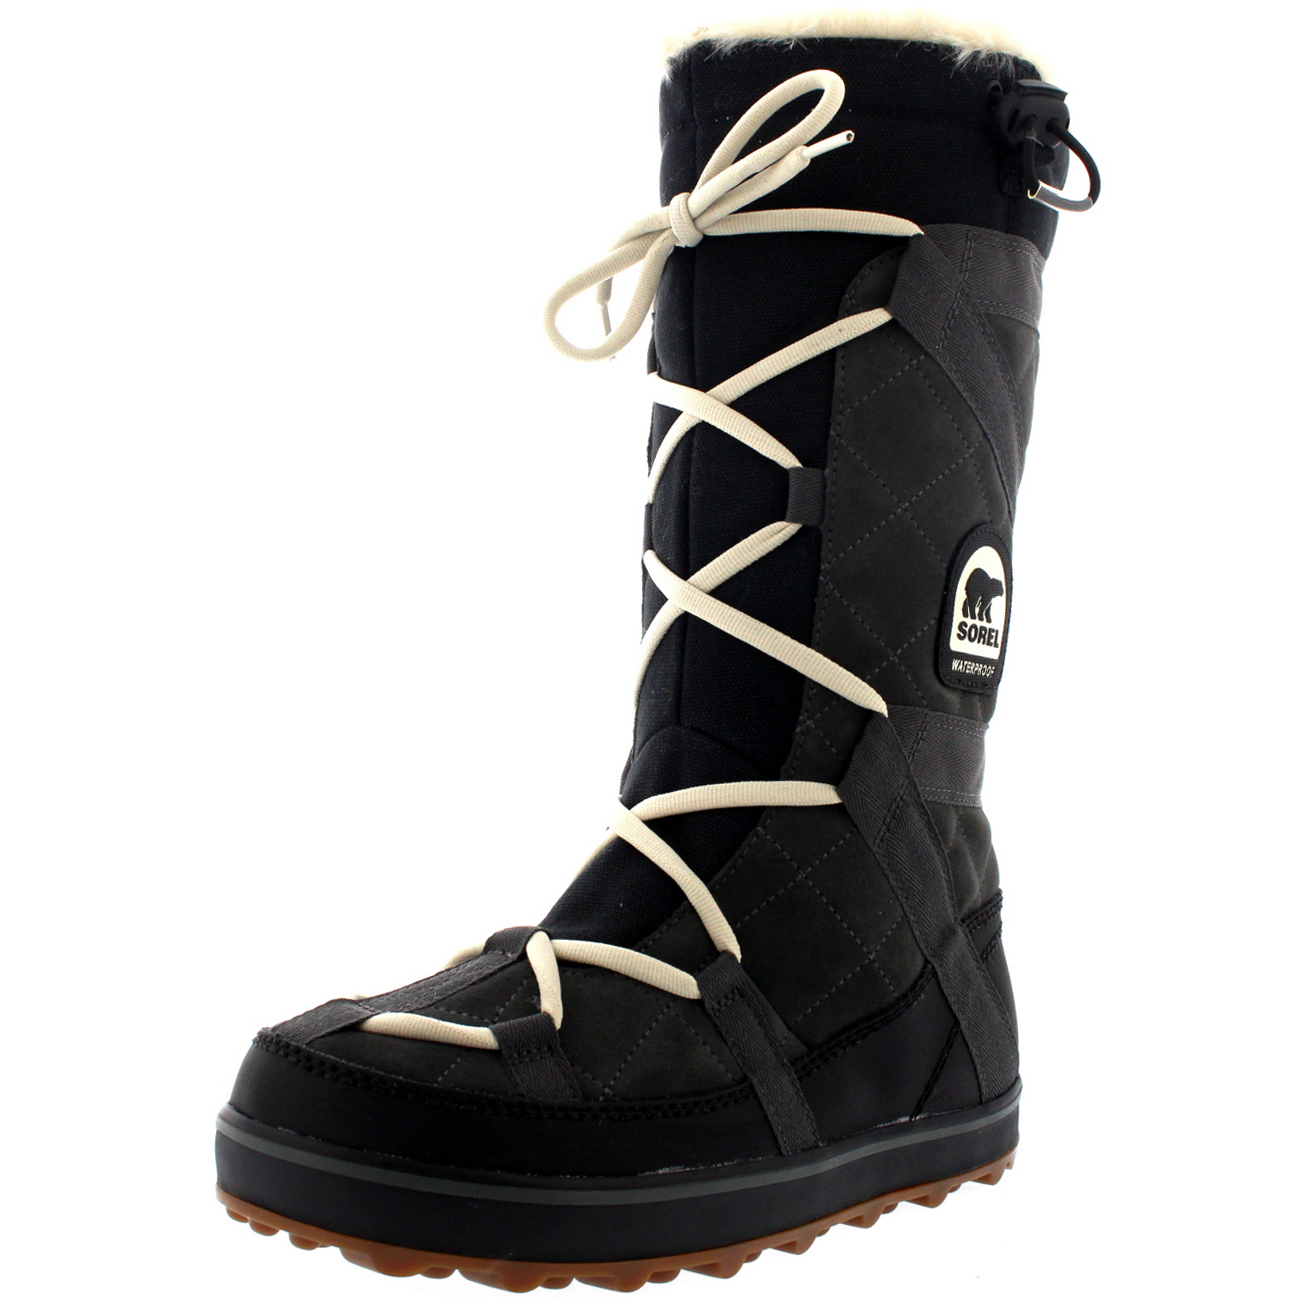 Womens Sorel Glacy Explorer Waterproof Winter Rain Fur Lined Snow ...